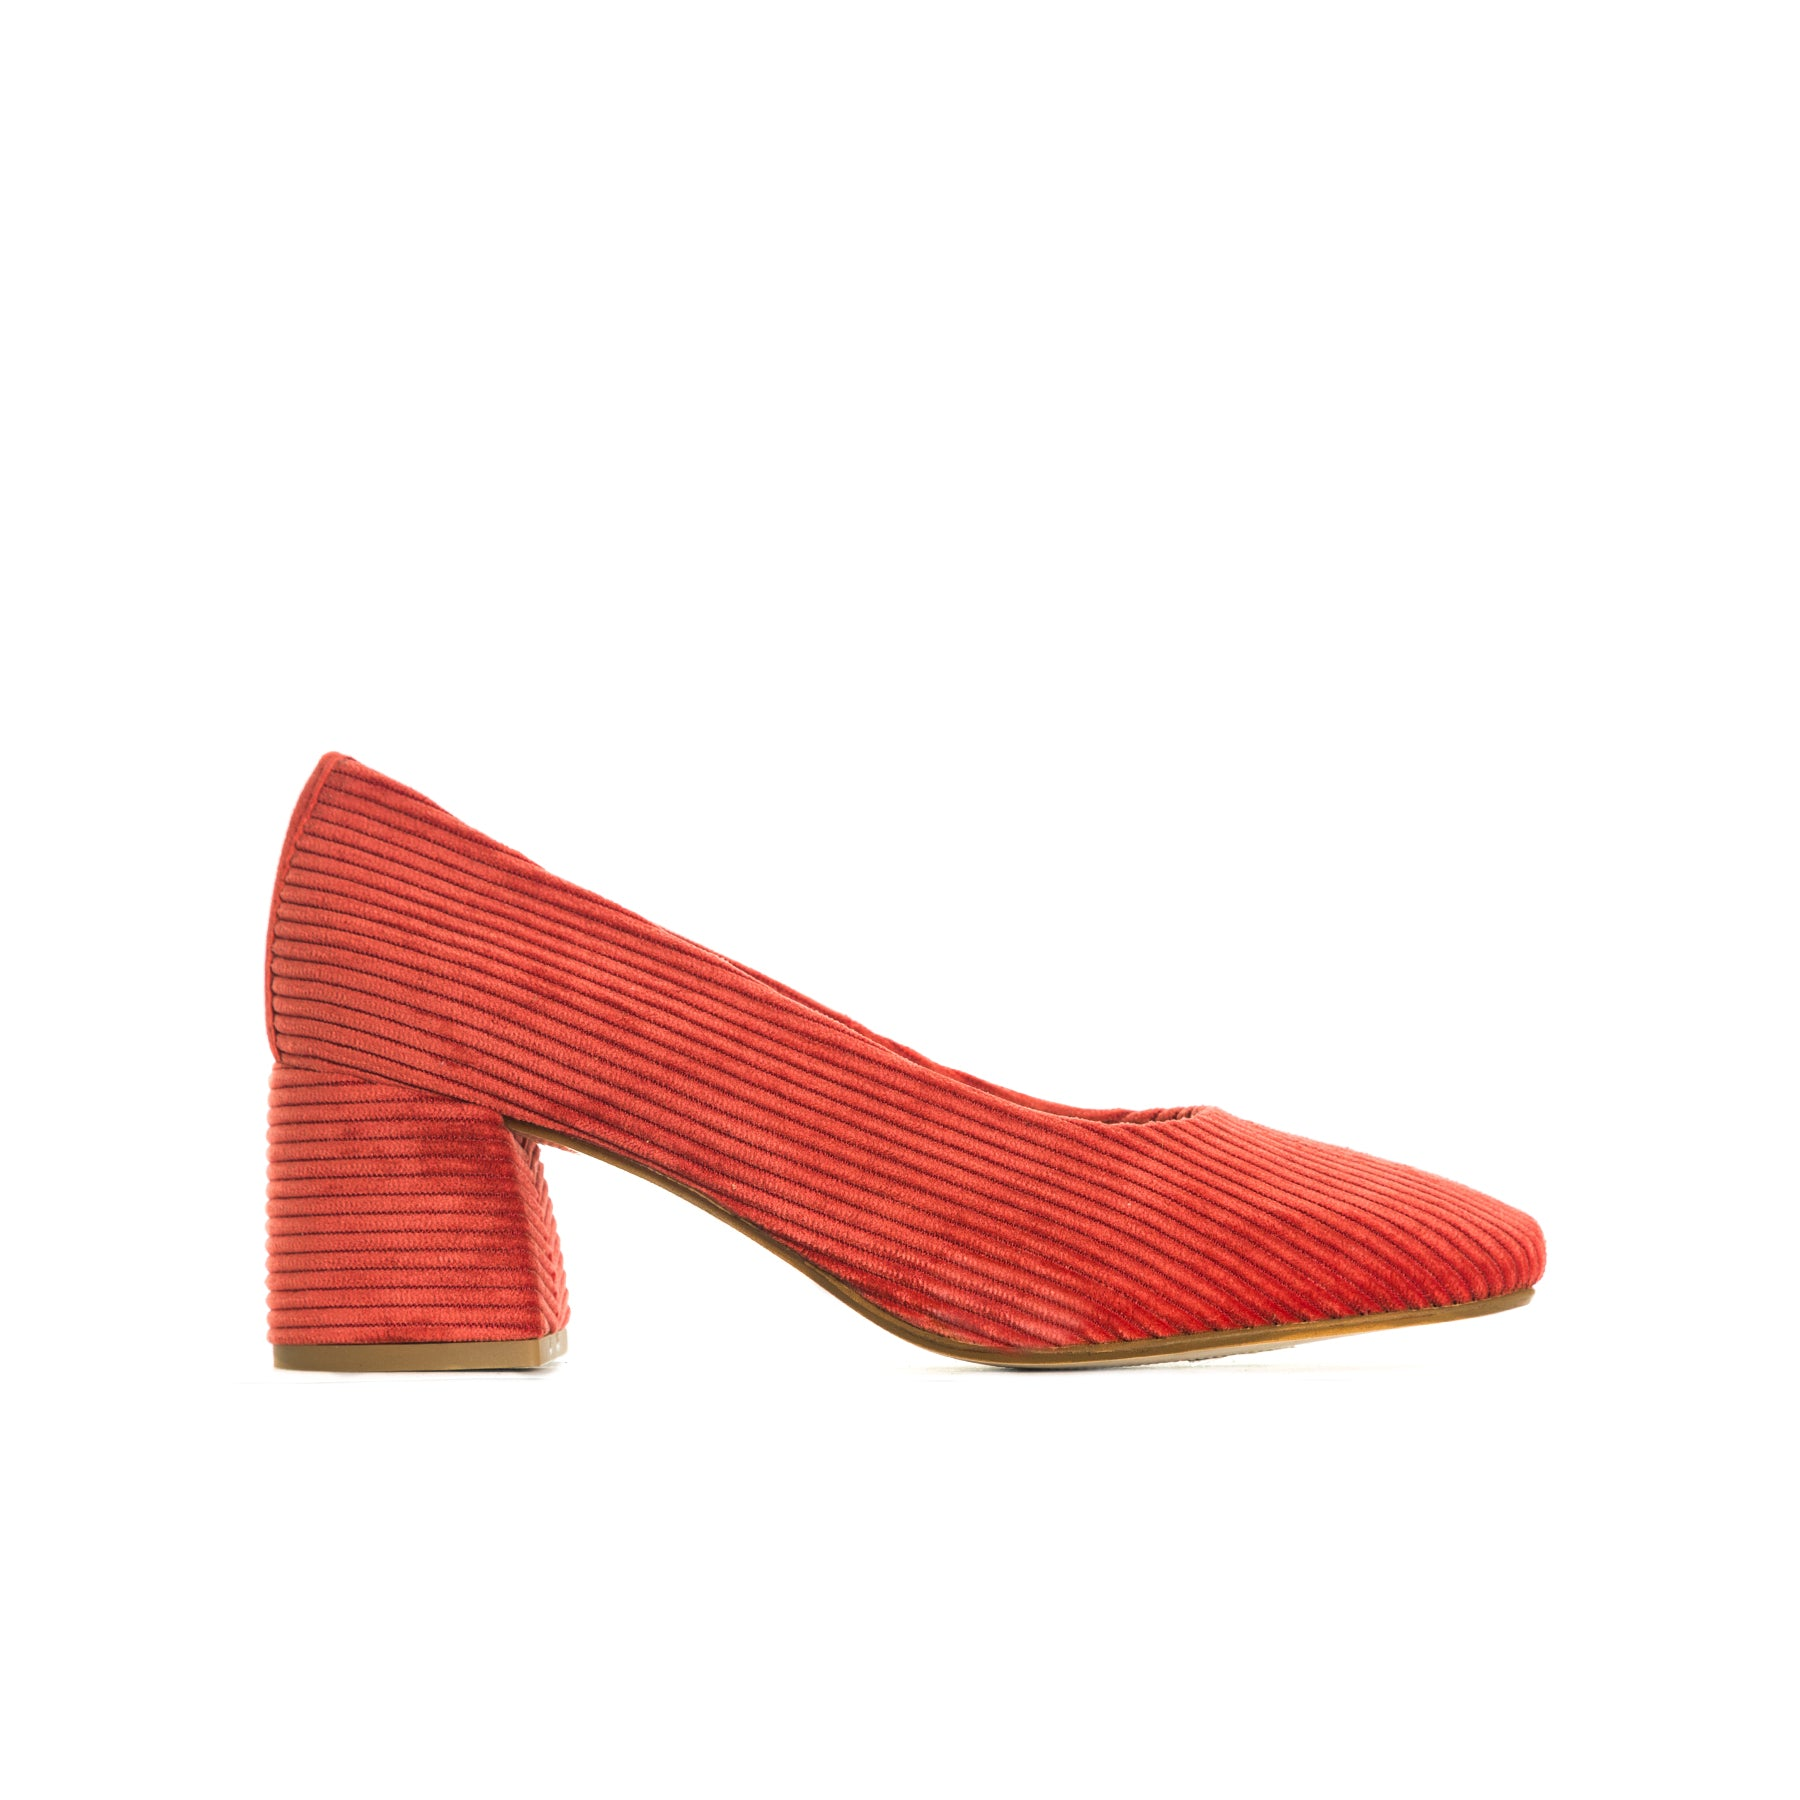 Trini Red Corduroy Pumps